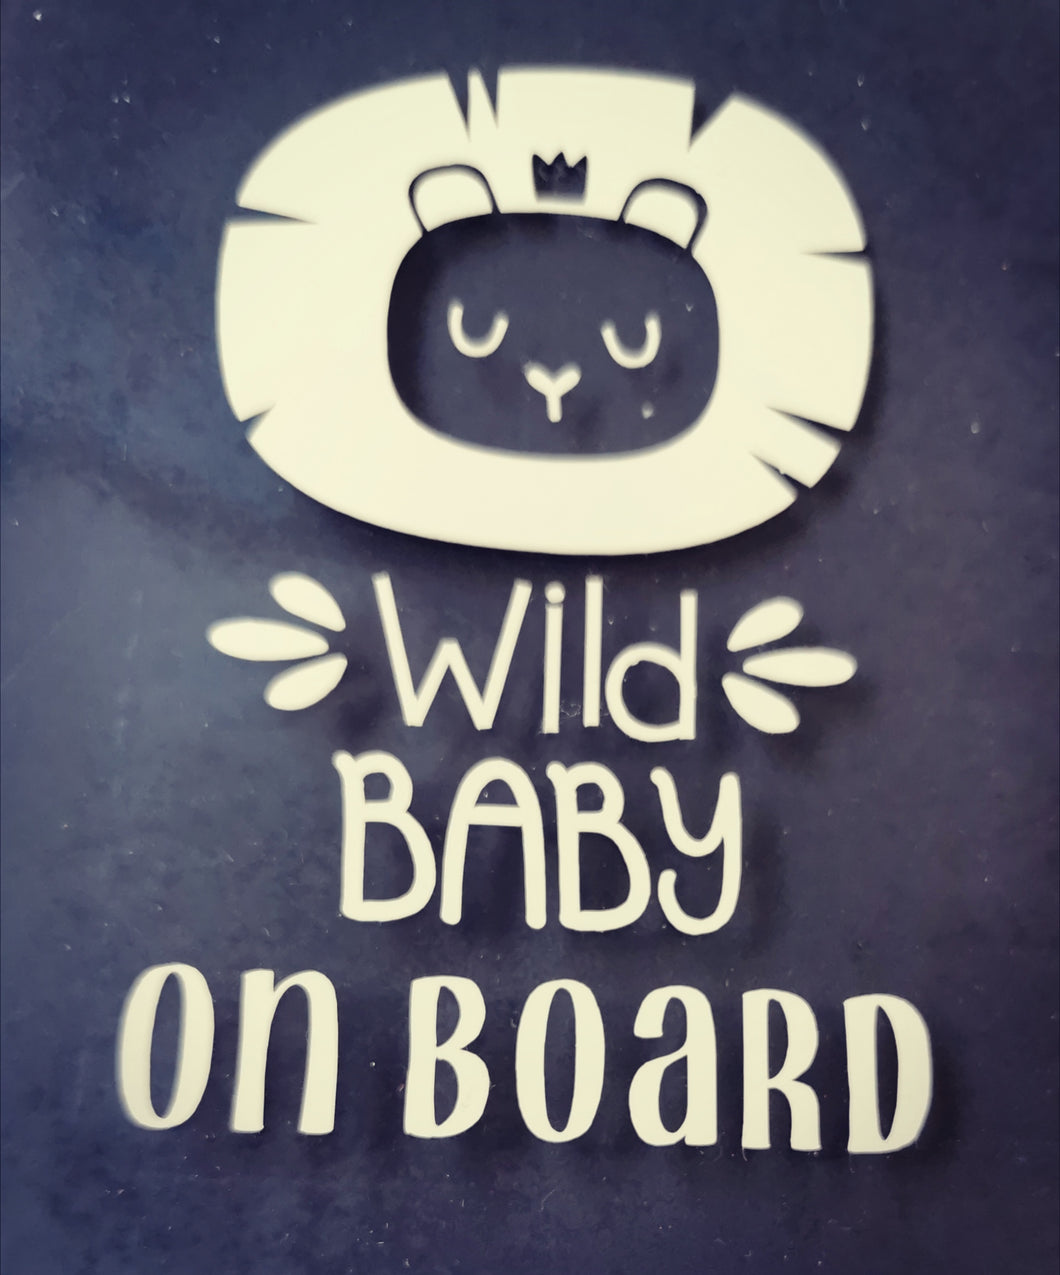 Wild Baby Car Decal